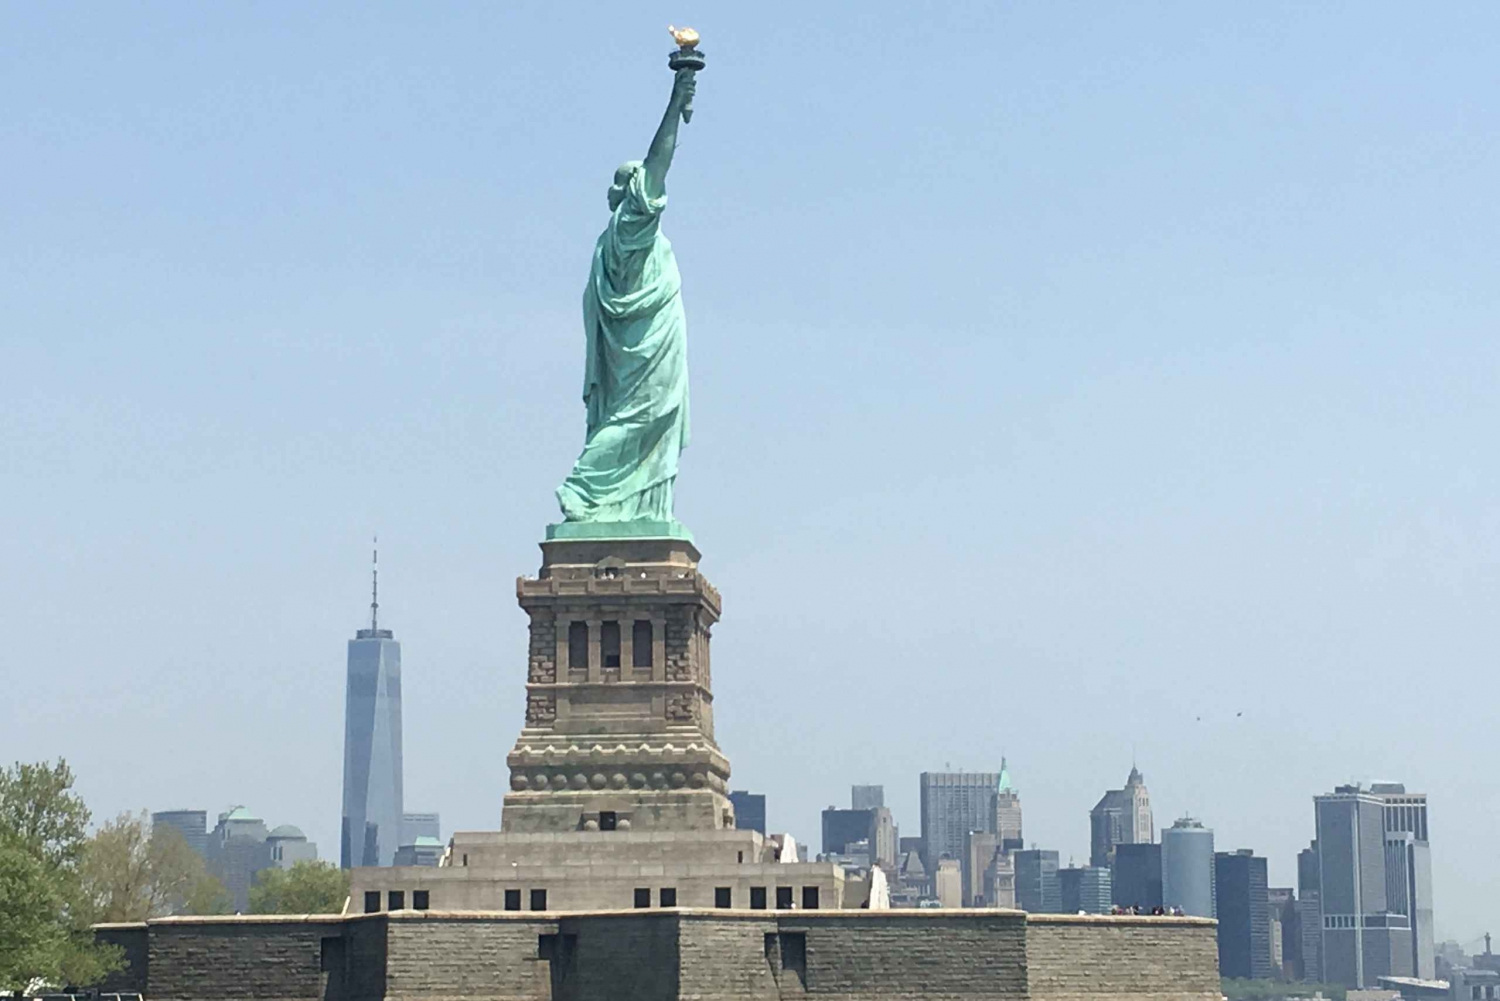 Statue of Liberty, Ellis Island and Grand Central Audio Tour